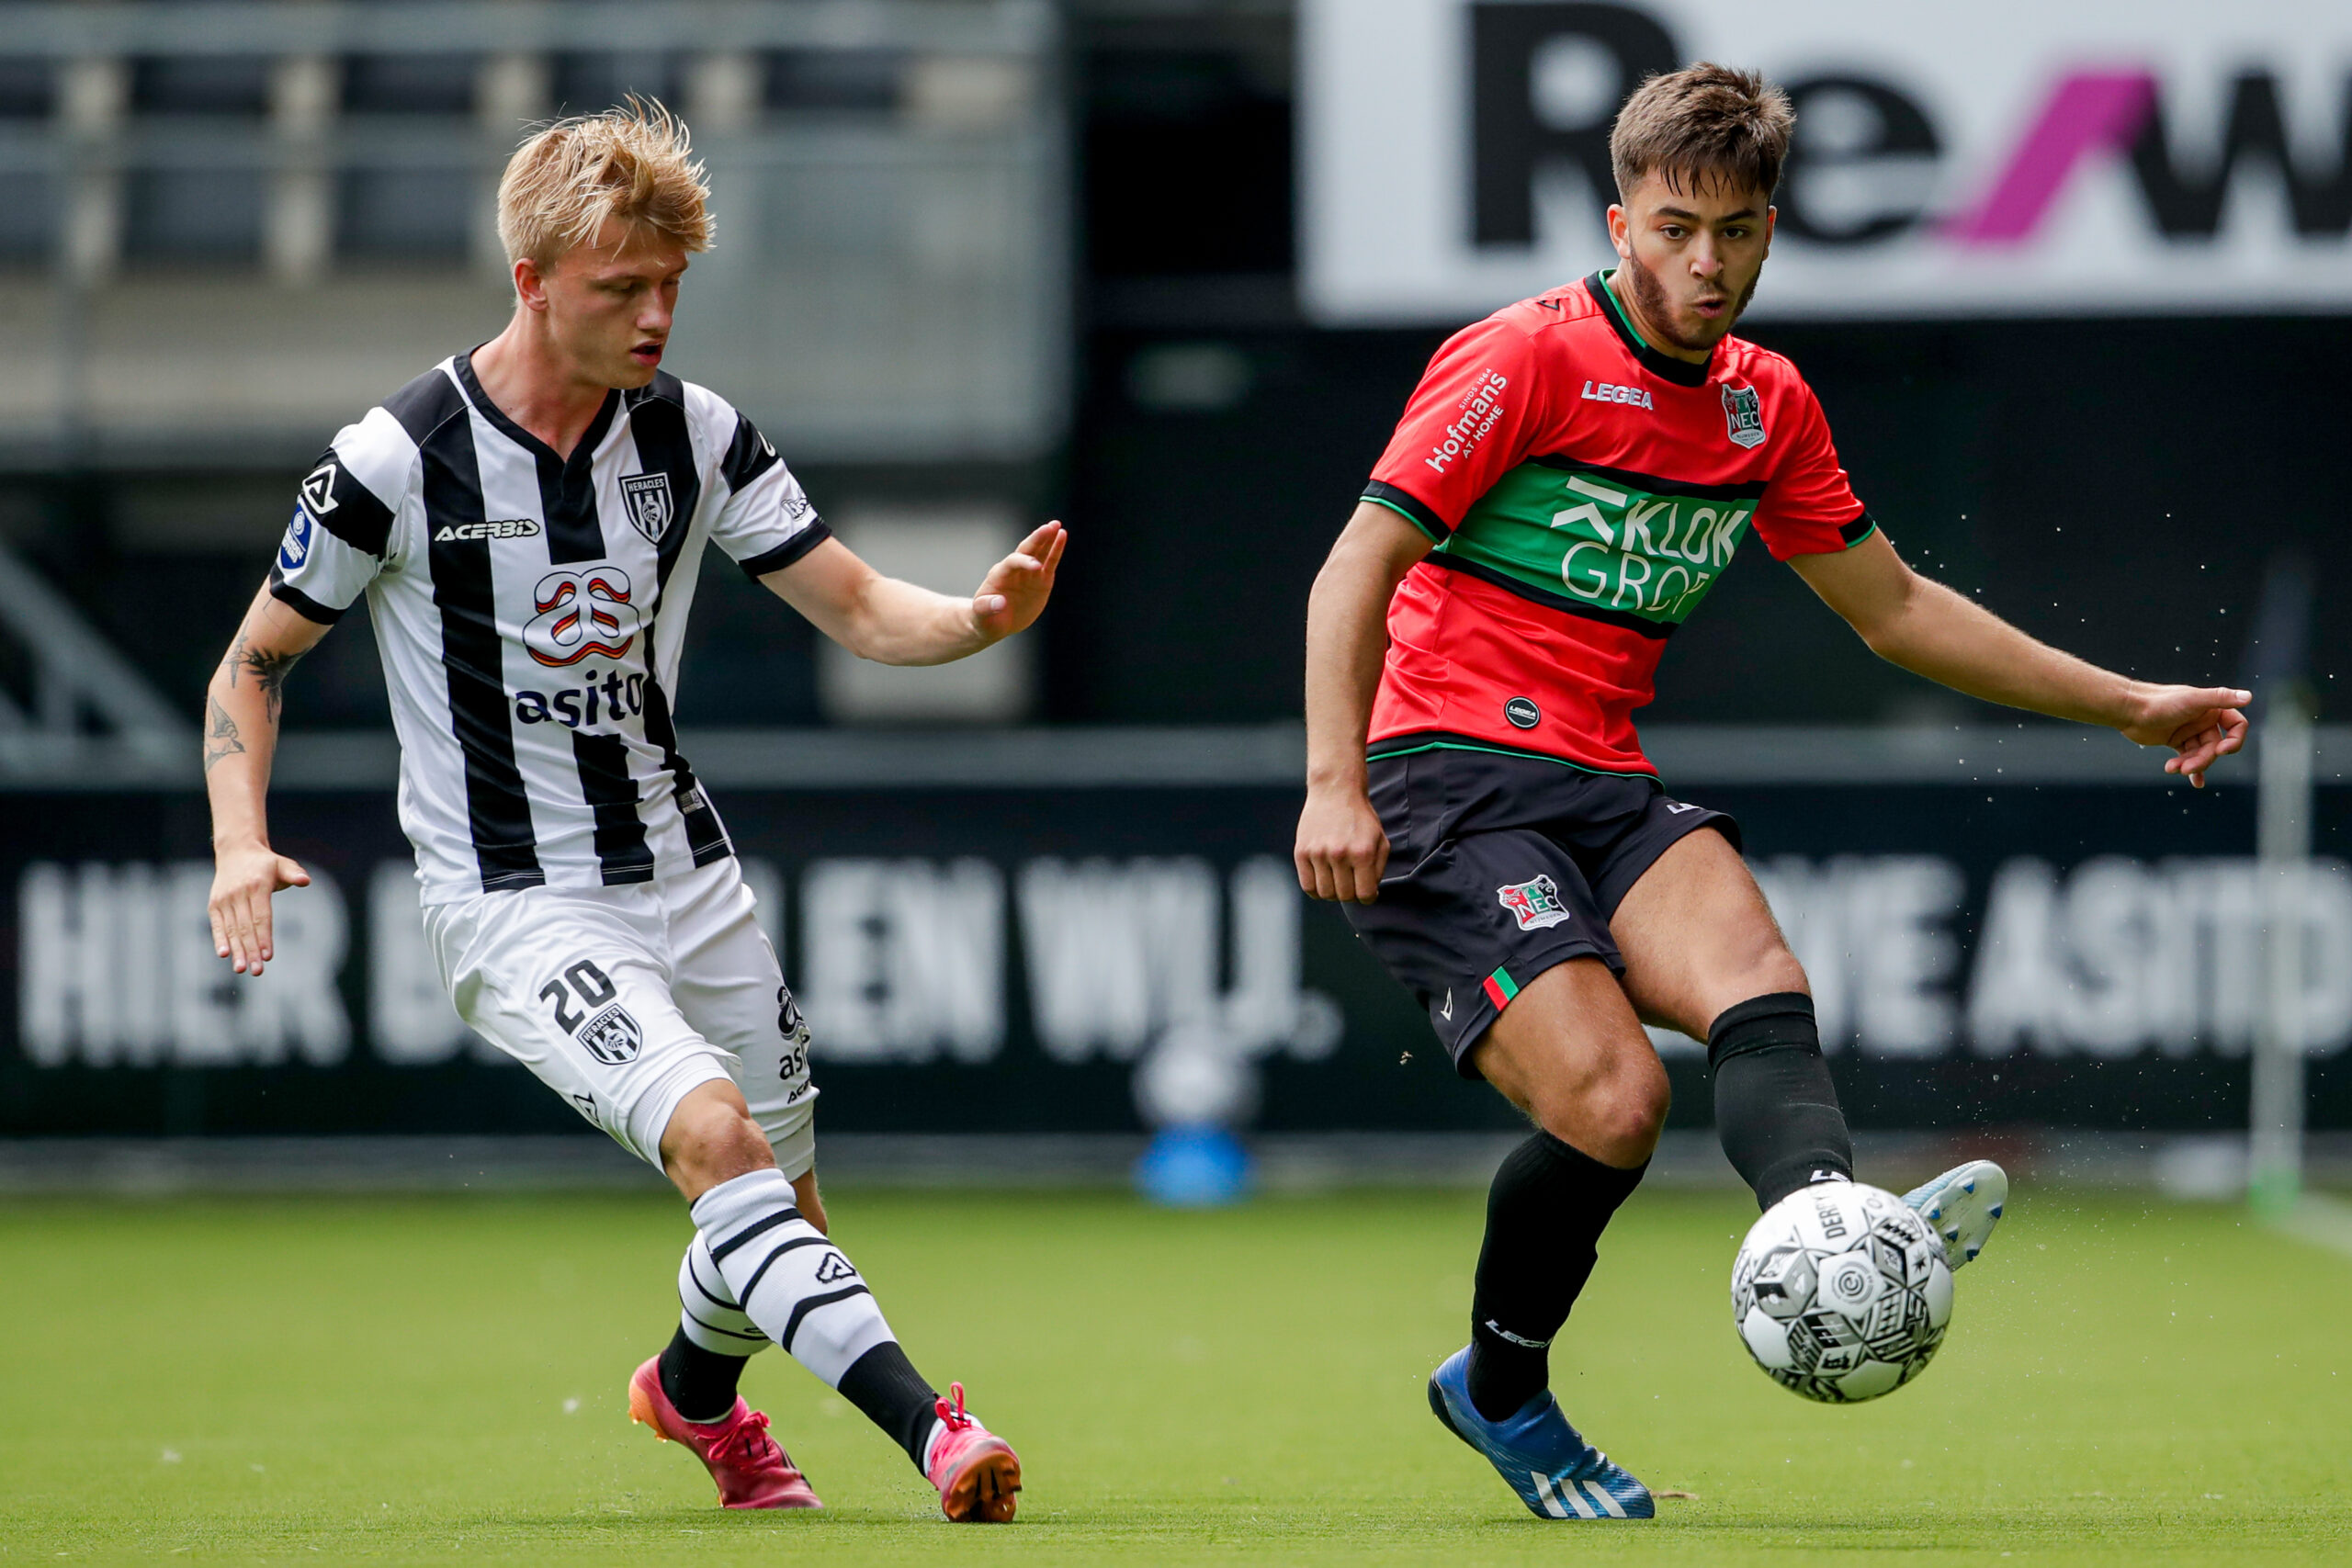 """Heracles-trainer Wormuth: """"Opletten, want NEC countert heel goed"""""""